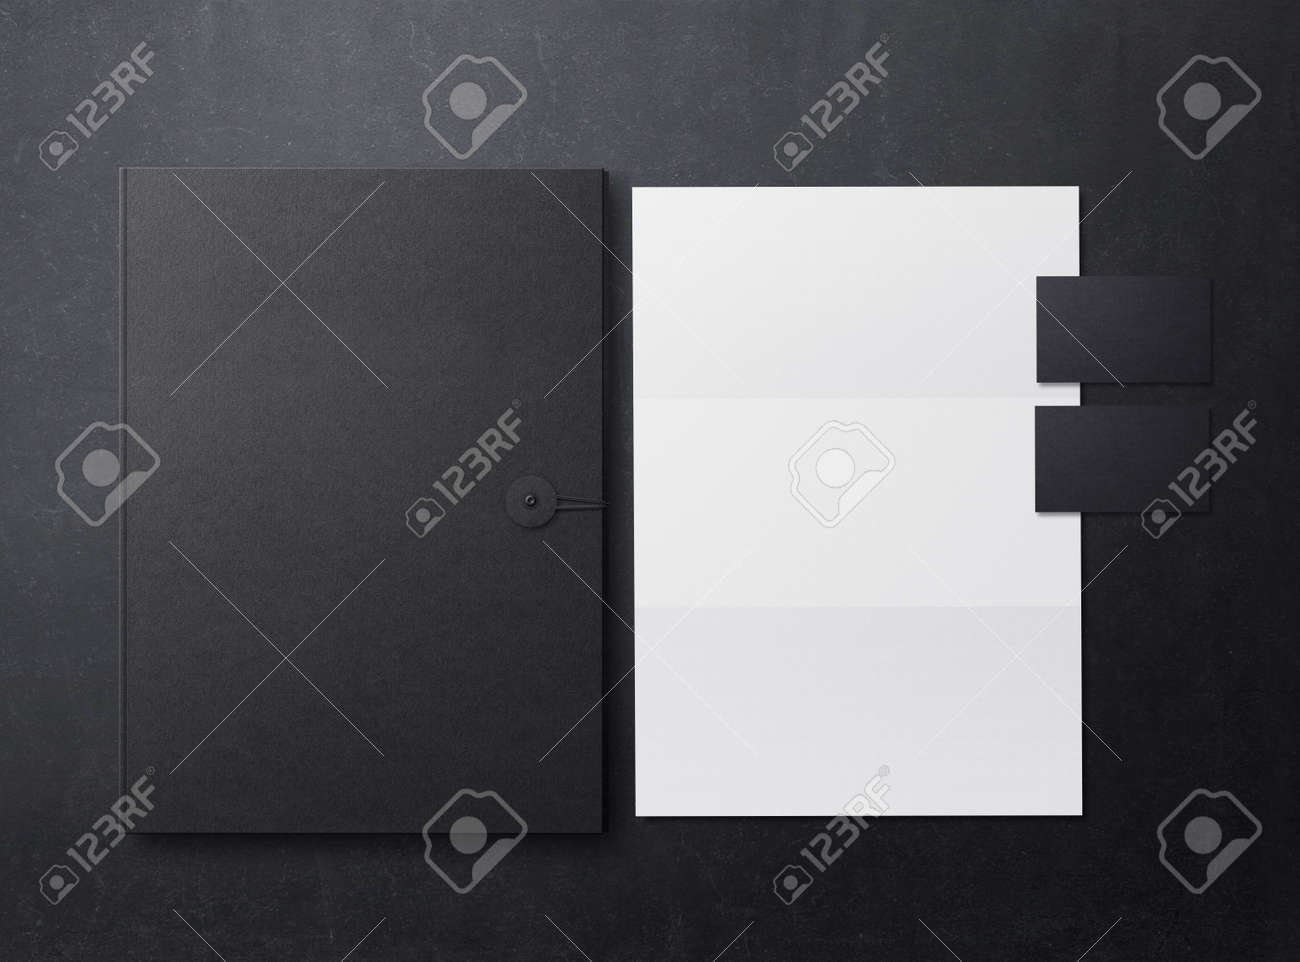 Brand identity mockup. Template for branding identity. Blank objects for placing your design. Sheets of paper, folder and business cards. 3d illustration. - 152369668